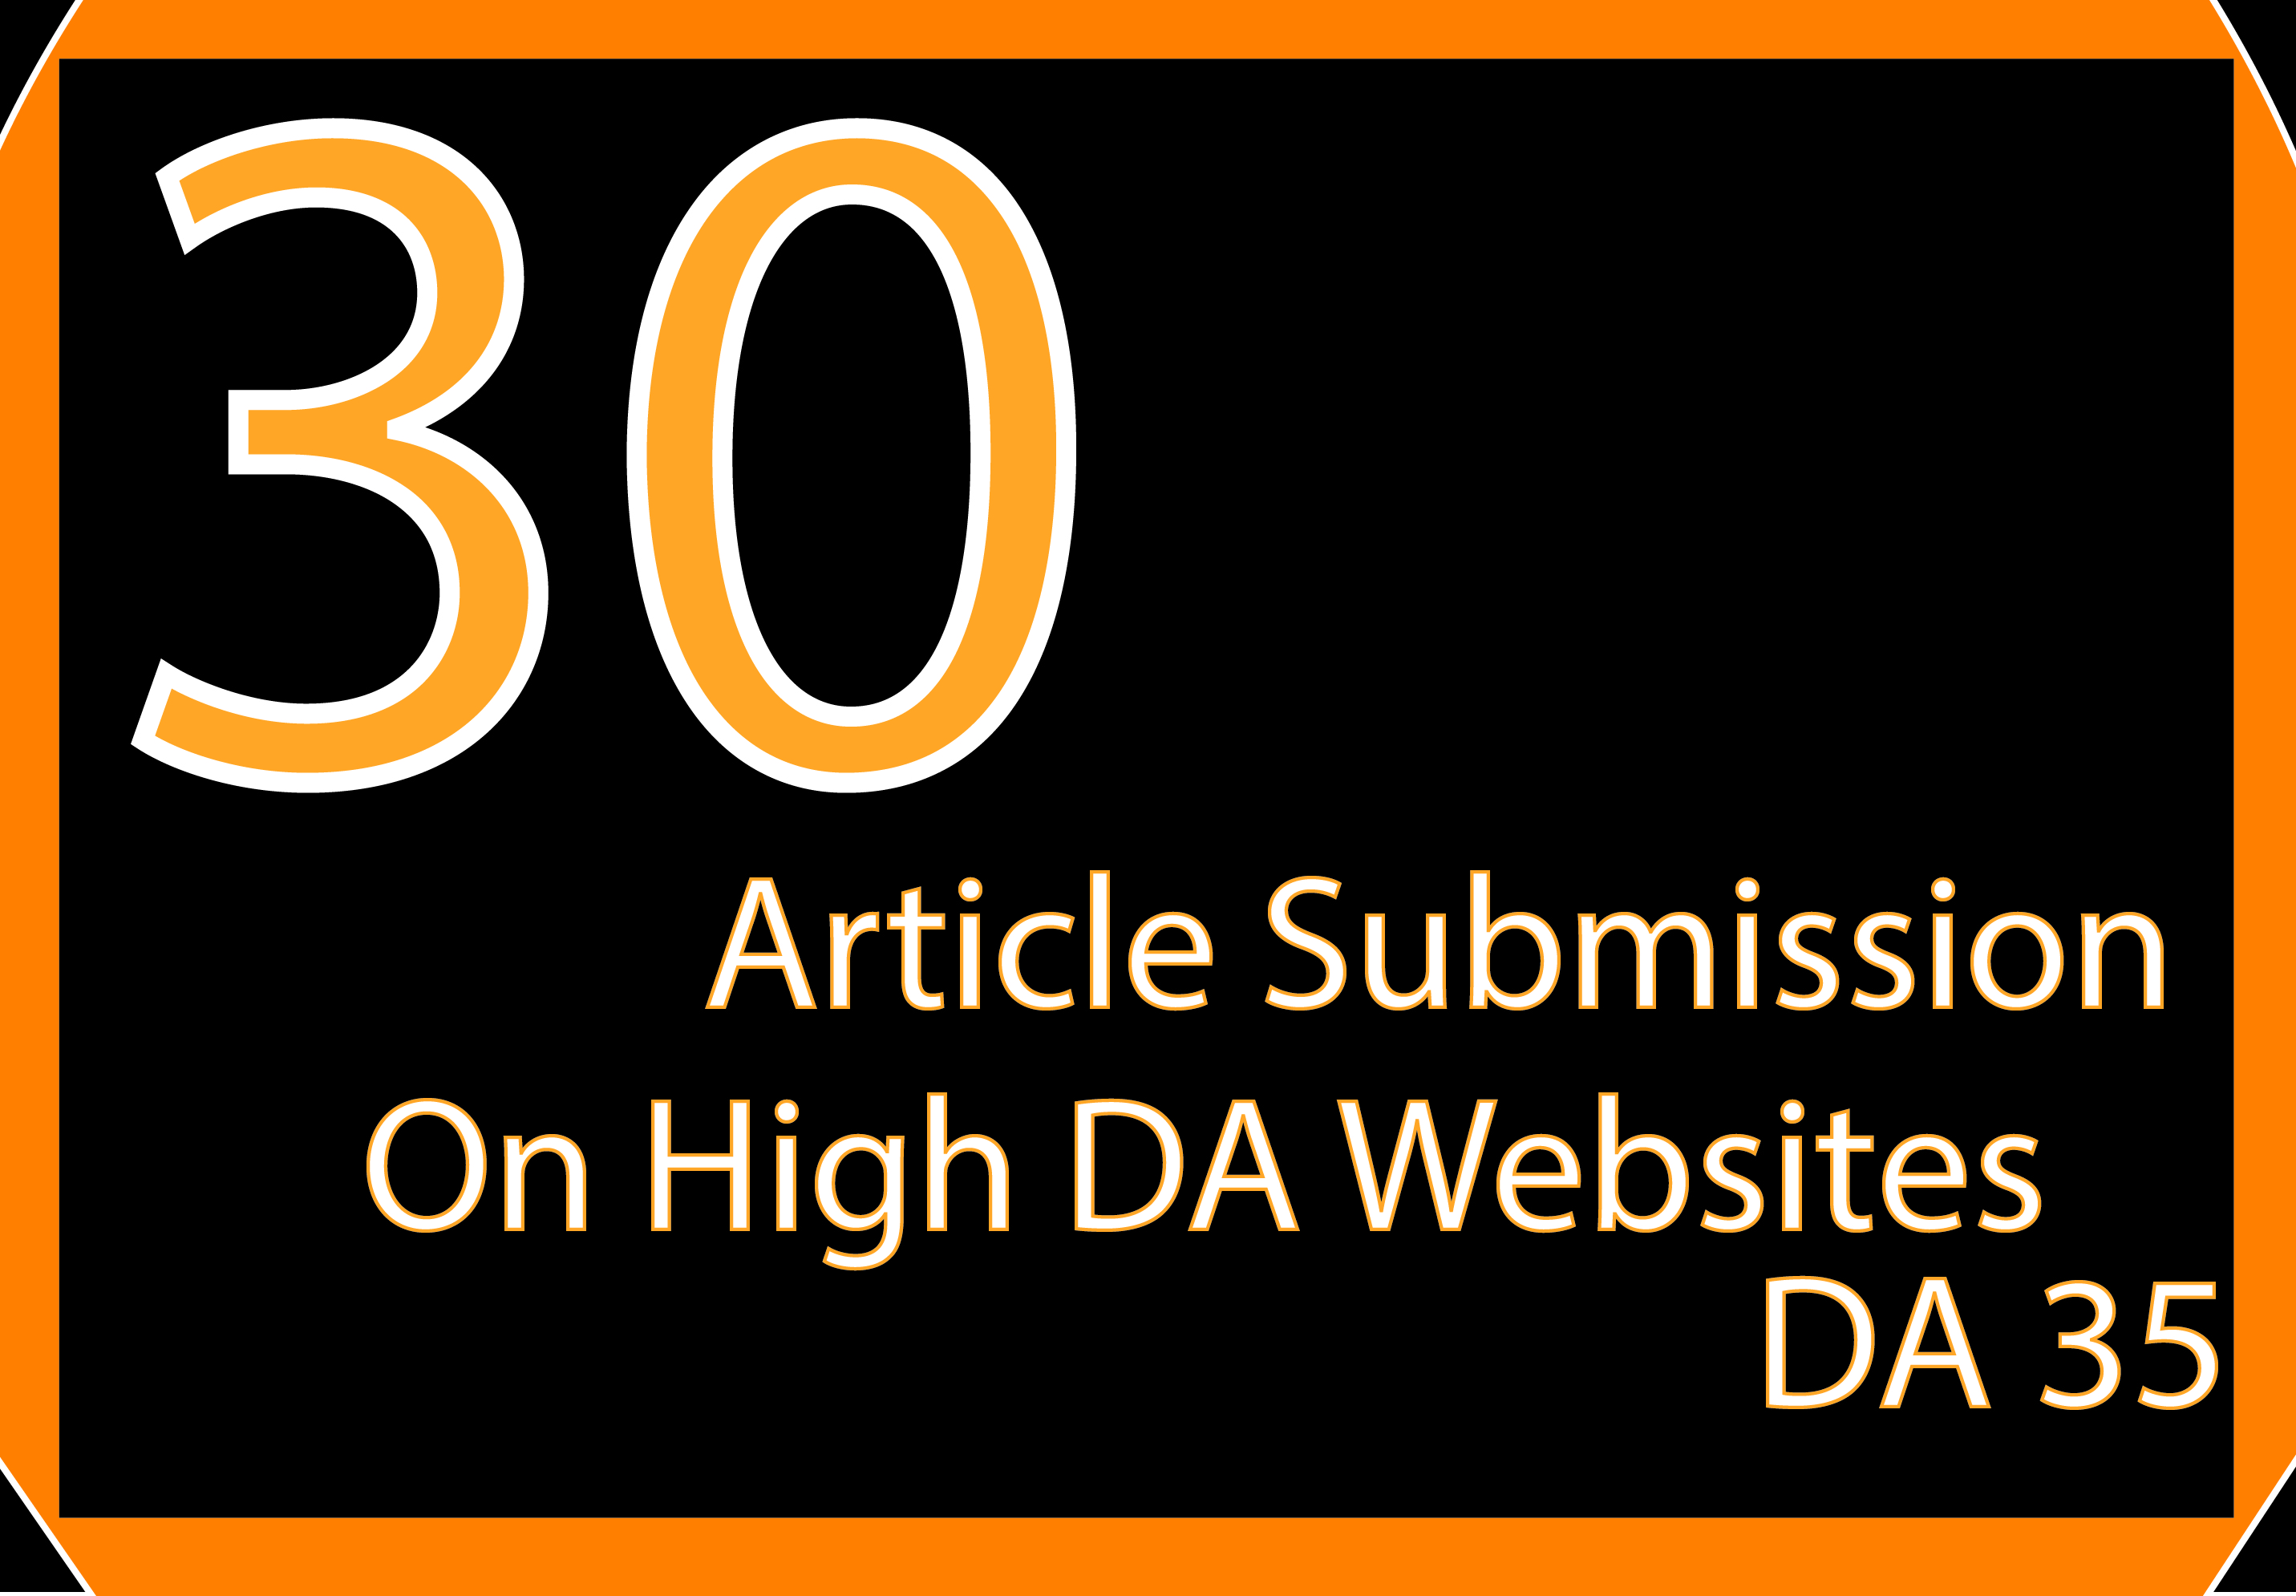 I Will Post on DA 35 SEO Backlinks 35 Article Submission